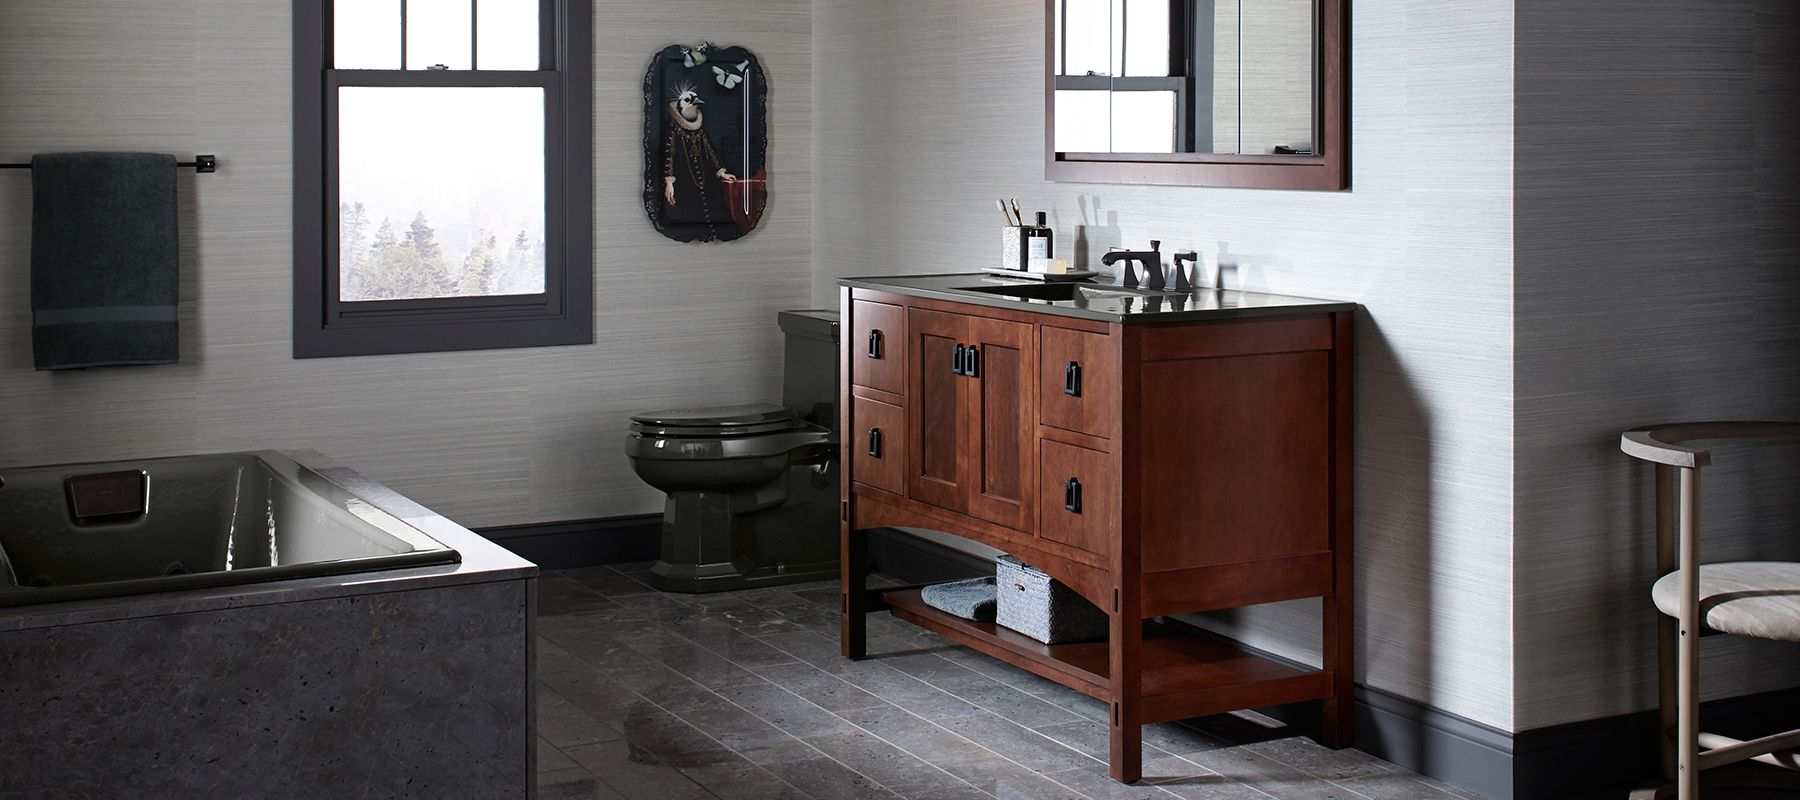 Bathroom Vanities Bathroom KOHLER - Bathroom sink stores near me